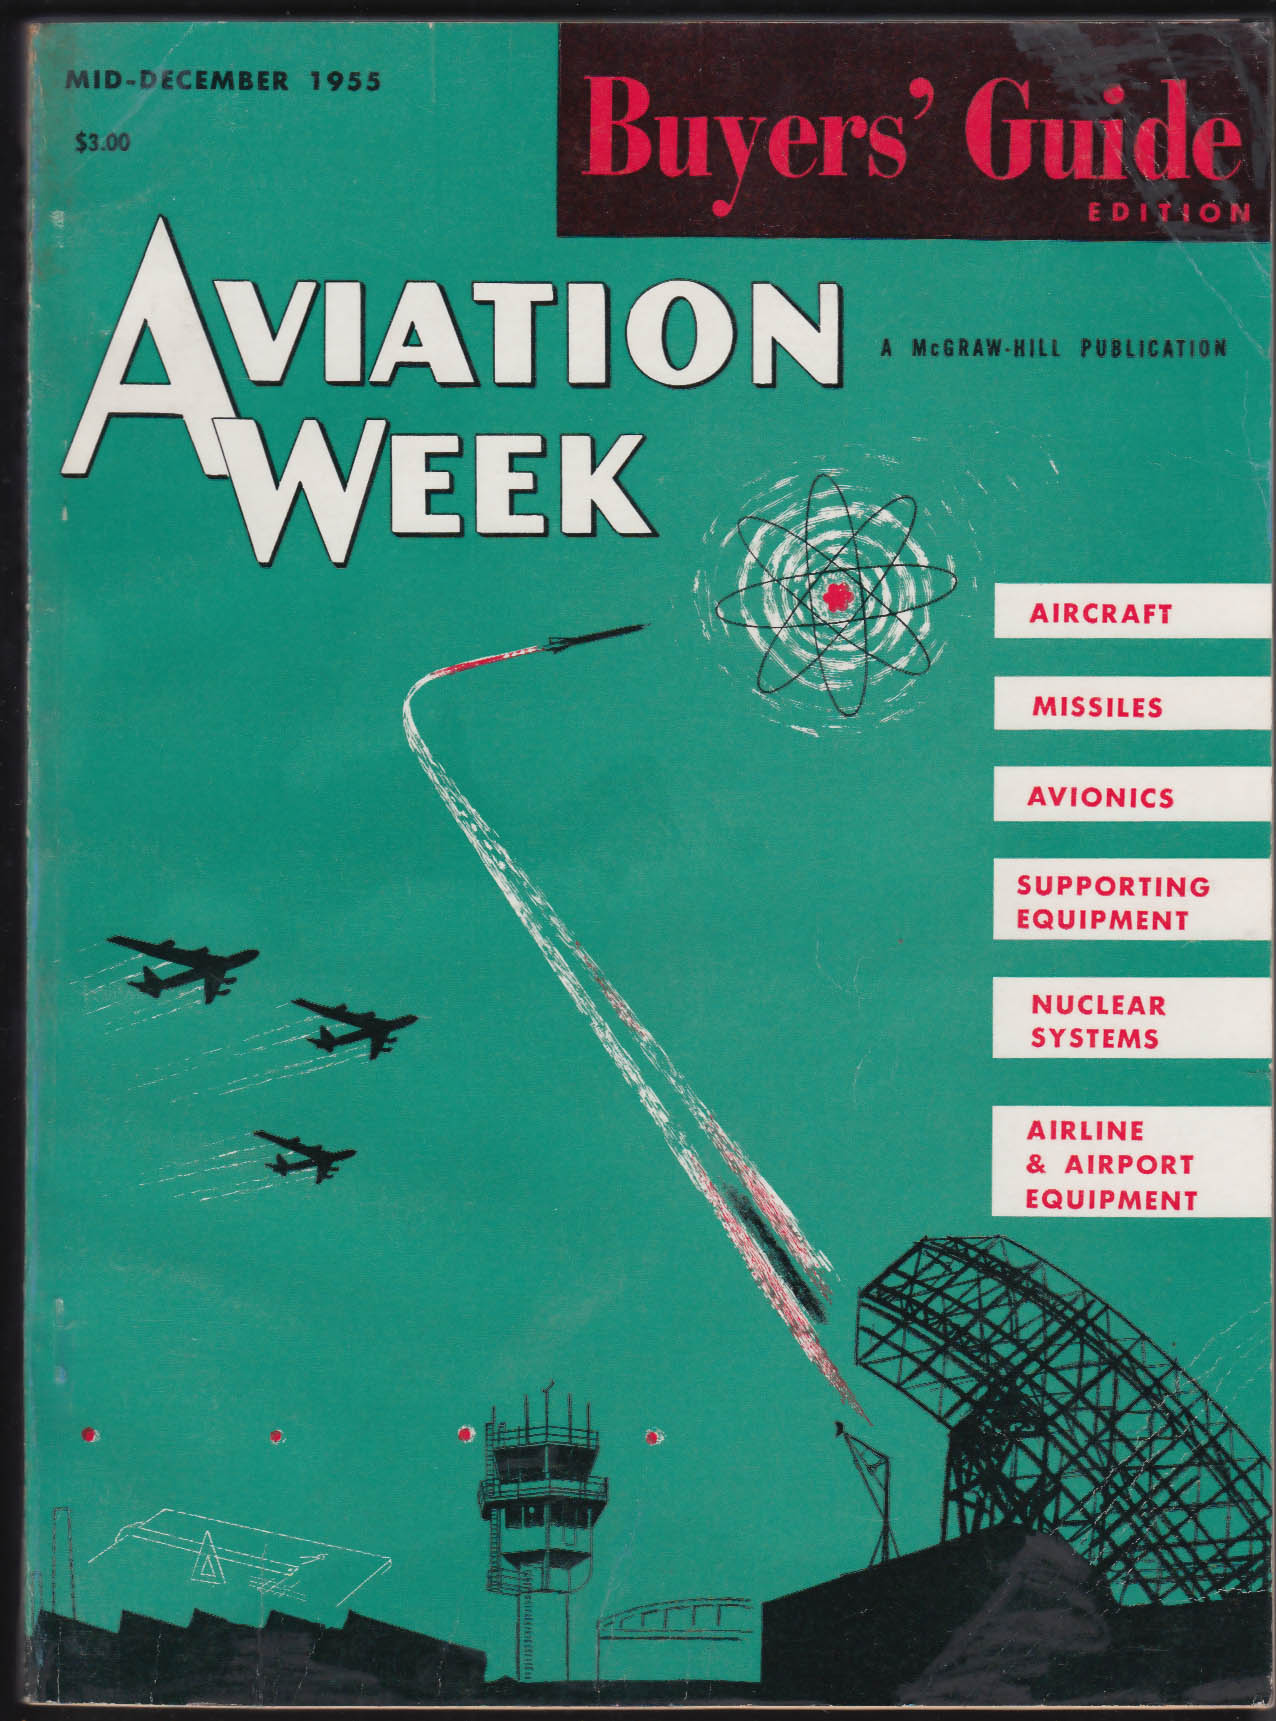 AVIATION WEEK 1956 Buyers' Guide USAF ARDC 12 1955